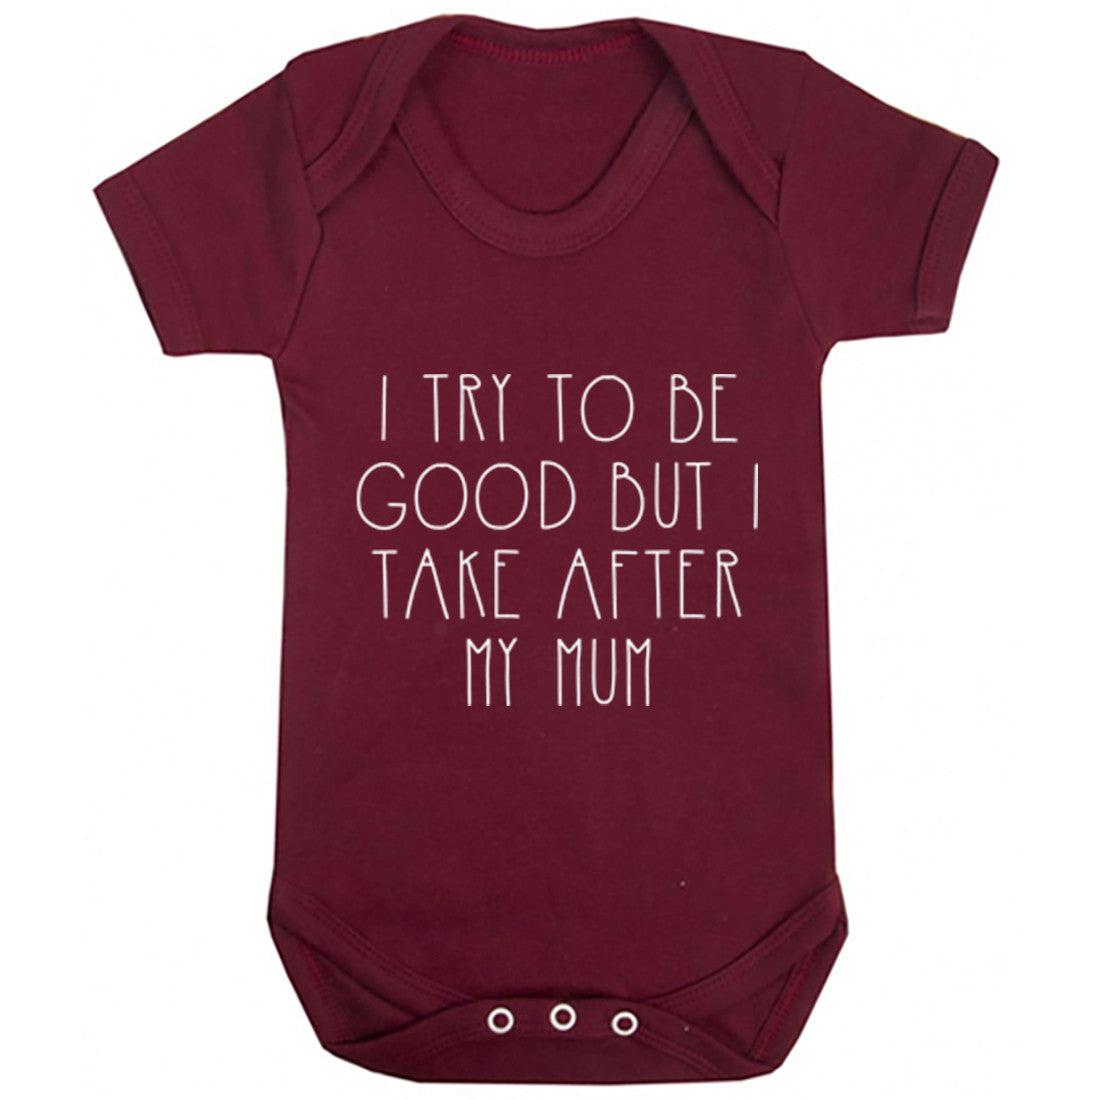 I Try To Be Good But I Take After My Mum Baby Vest K1530 - Illustrated Identity Ltd.